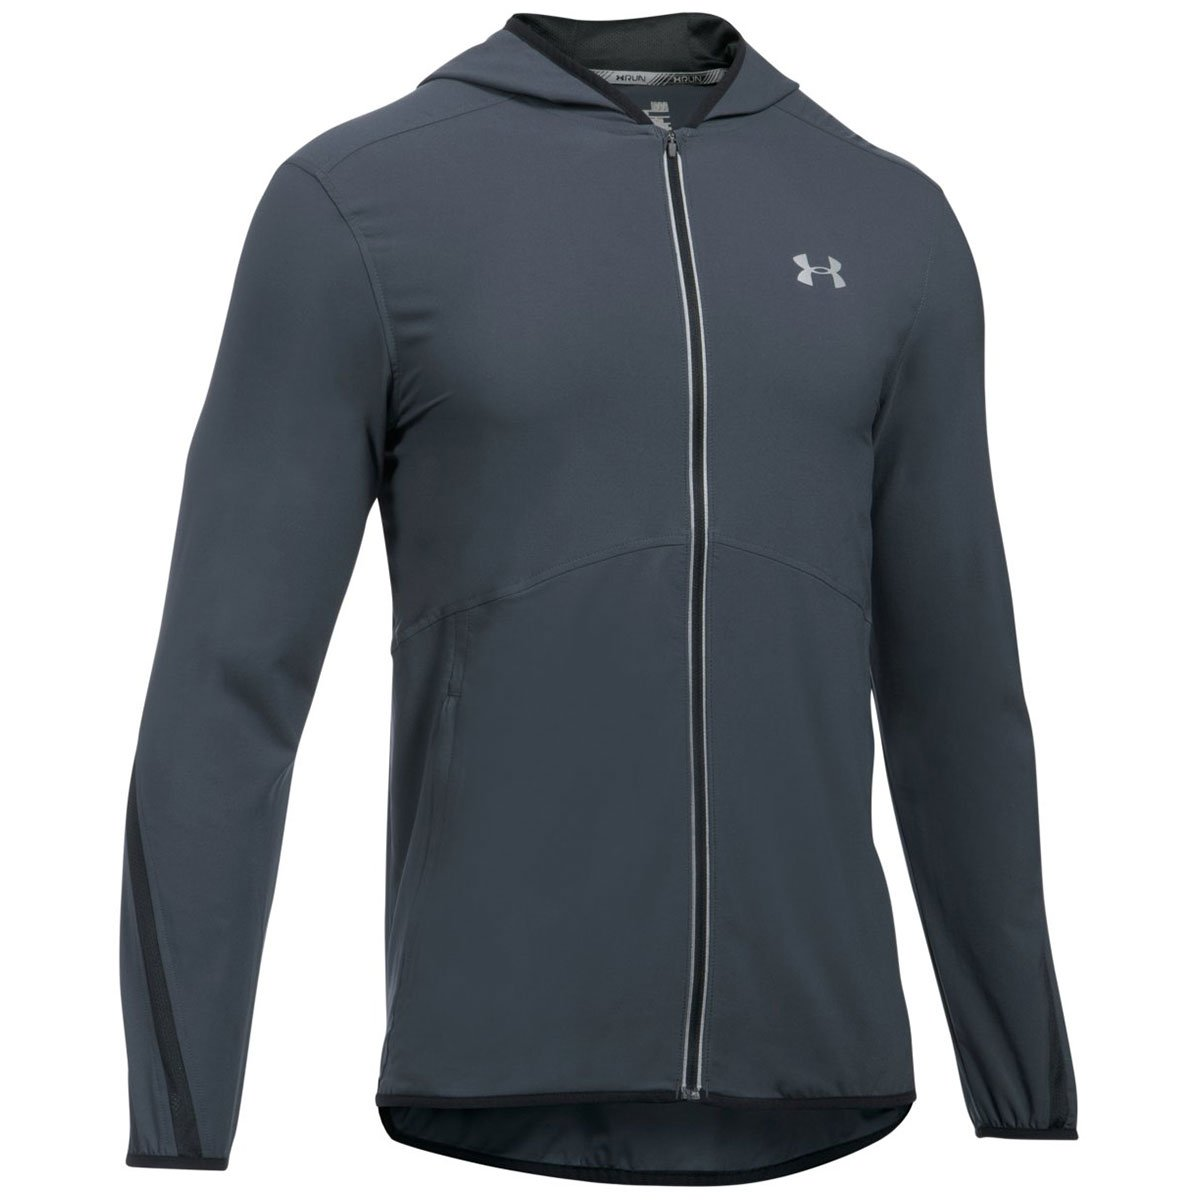 Under Armour Men's Run True Jacket,Stealth Gray (008)/Reflective, XXX-Large